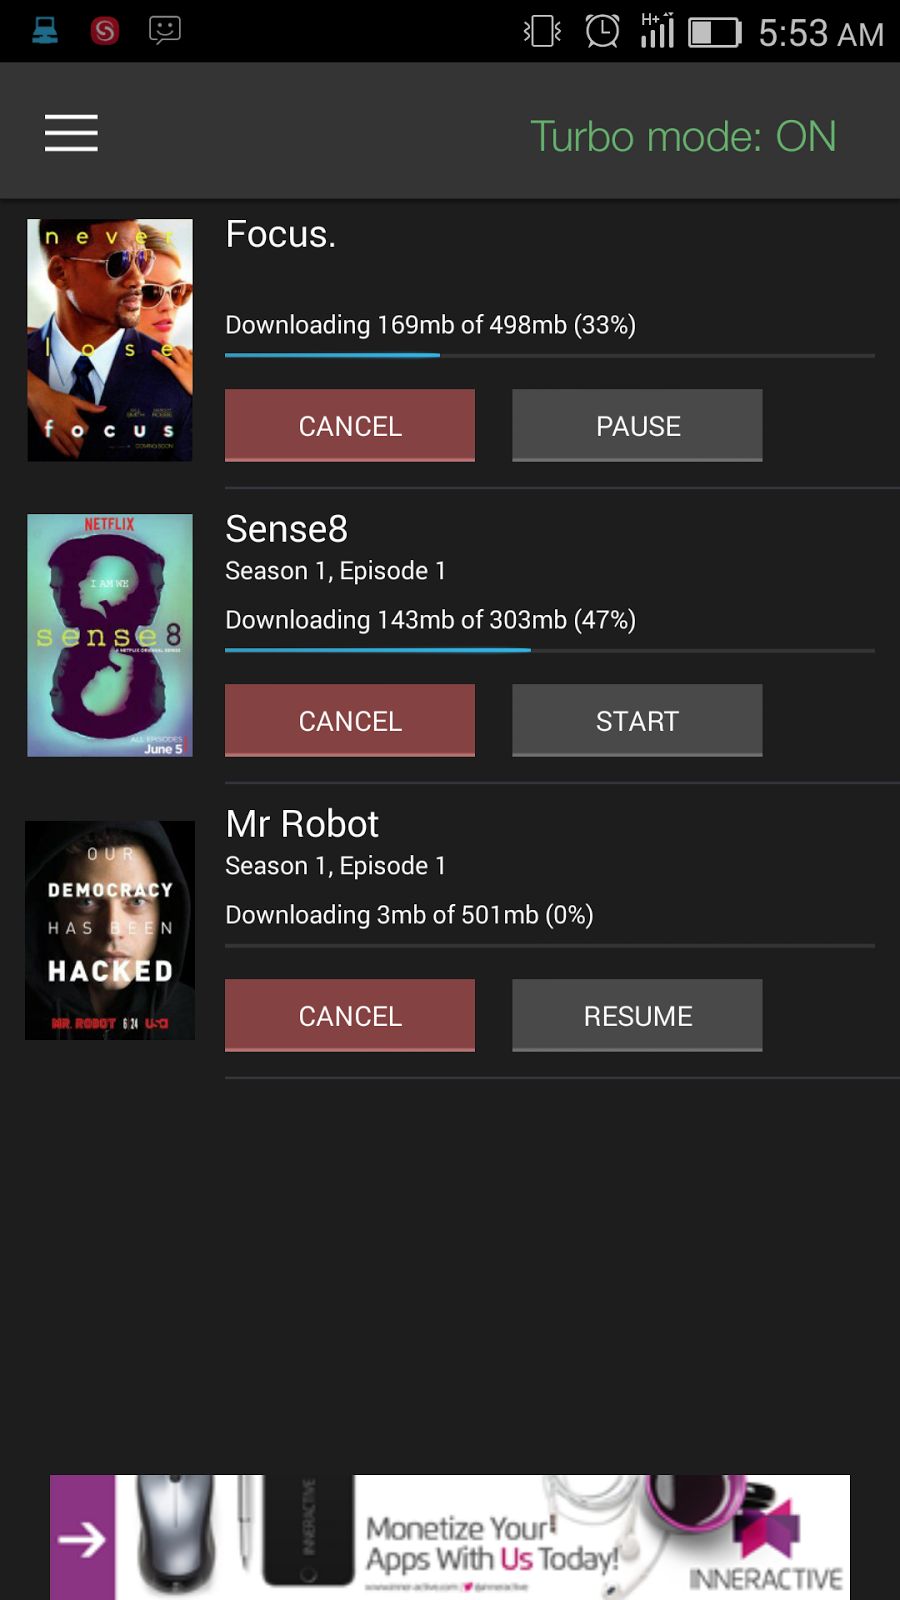 Phone Free Movie Sites For Android Phones stream download movies tvshows on android phonesshowbox stop wasting your precious time internet surfing in search of any favourite movie to watch showbox apk androi